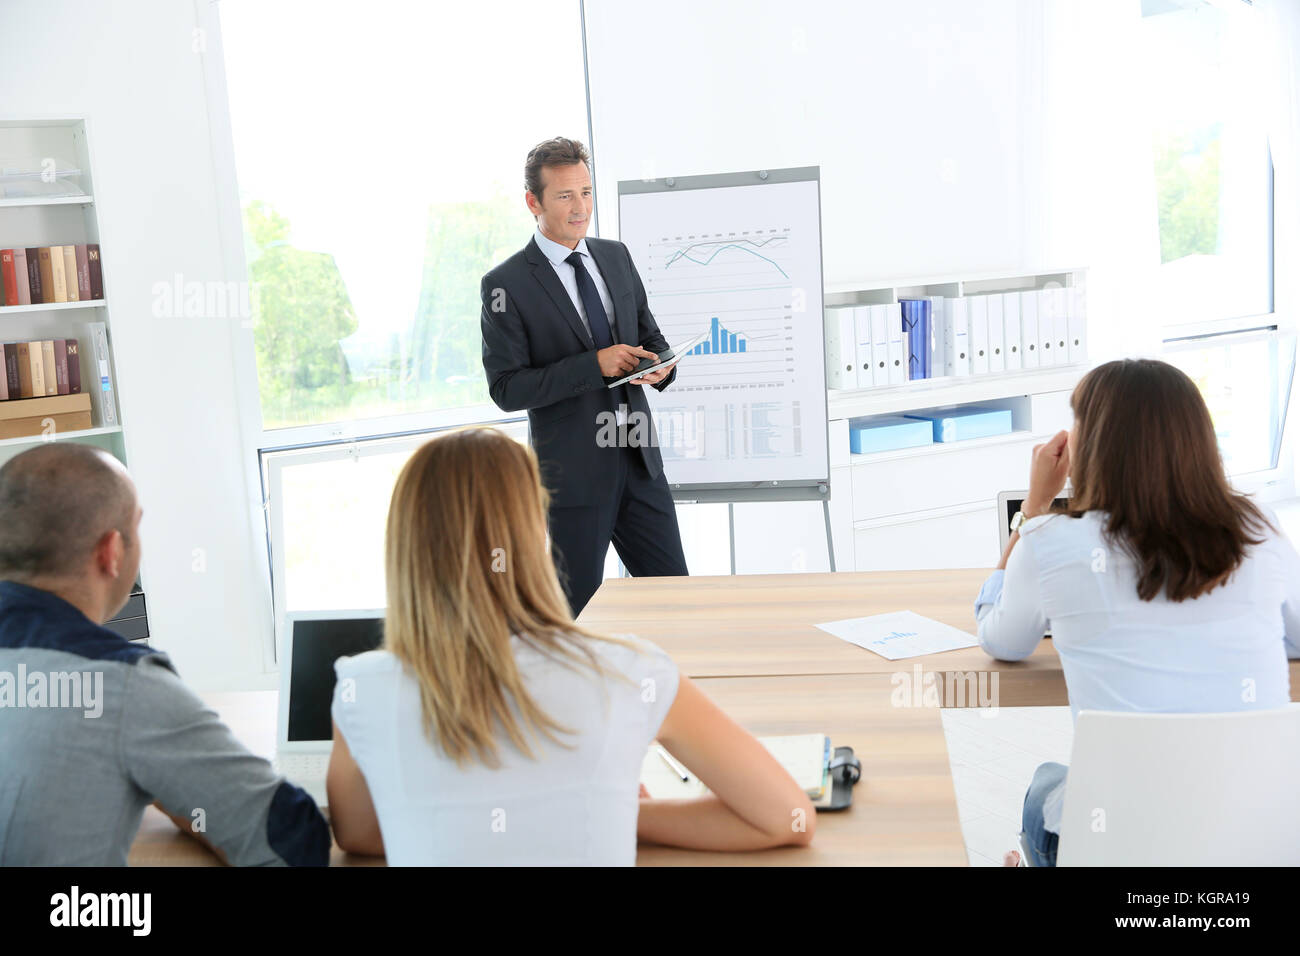 Business people attending weekly presentation - Stock Image